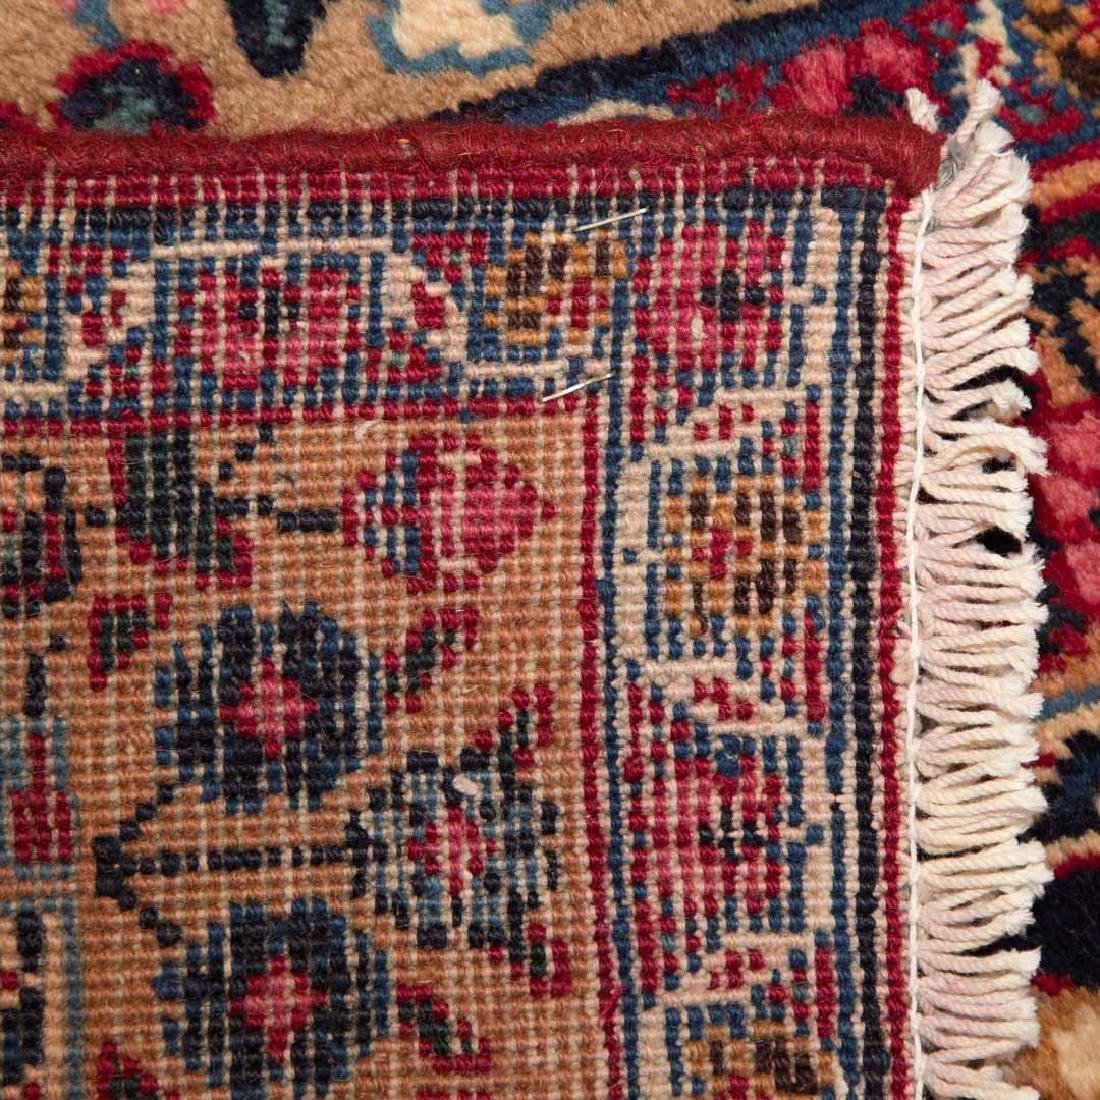 Persian Meshed rug, approx. 8.1 x 11 - 3